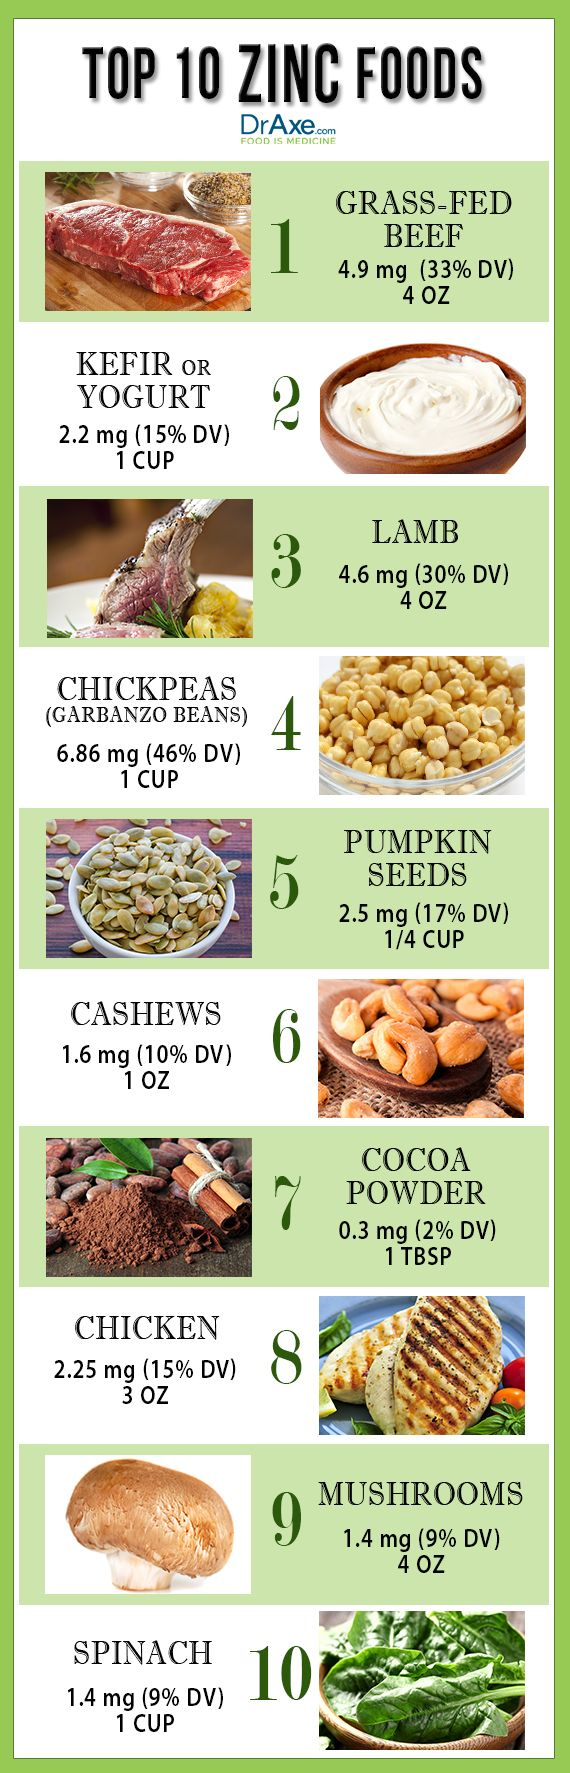 Zinc foods list healthy food pinterest zinc foods for Cuisine zinc